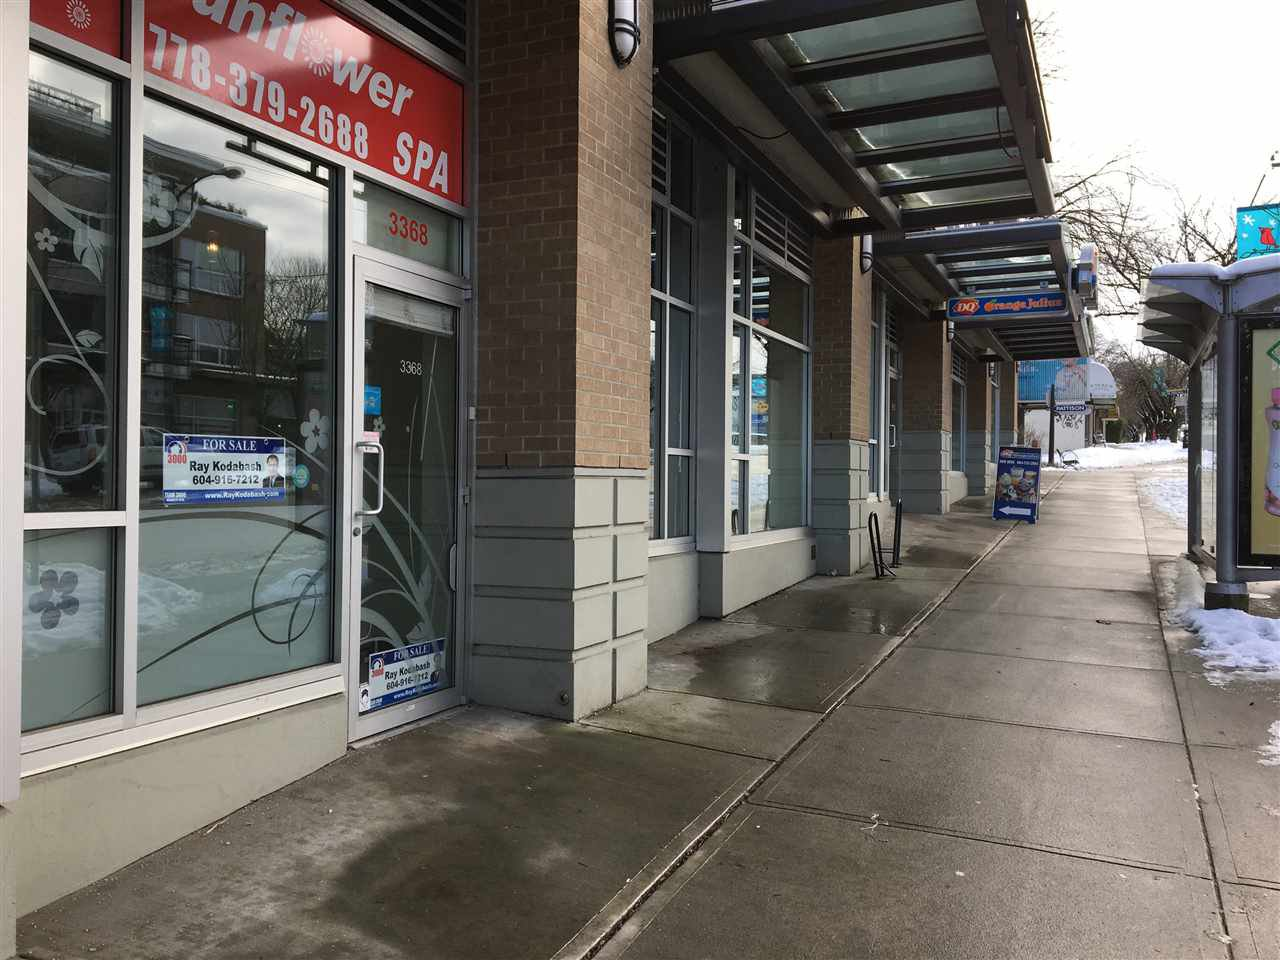 Main Photo: 3368 DUNBAR Street in Vancouver: Dunbar Retail for sale (Vancouver West)  : MLS®# C8034676